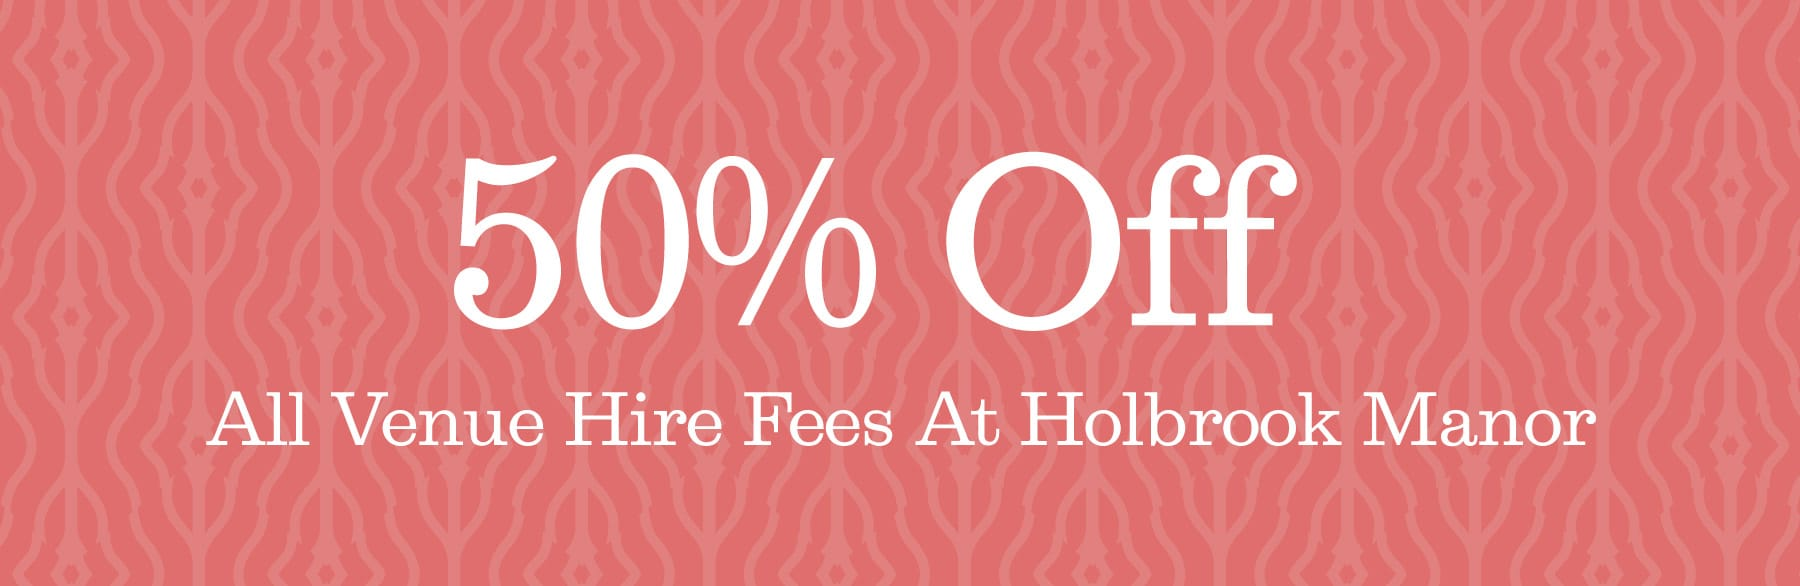 50% Off All Venue Hire Fees At Holbrook Manor